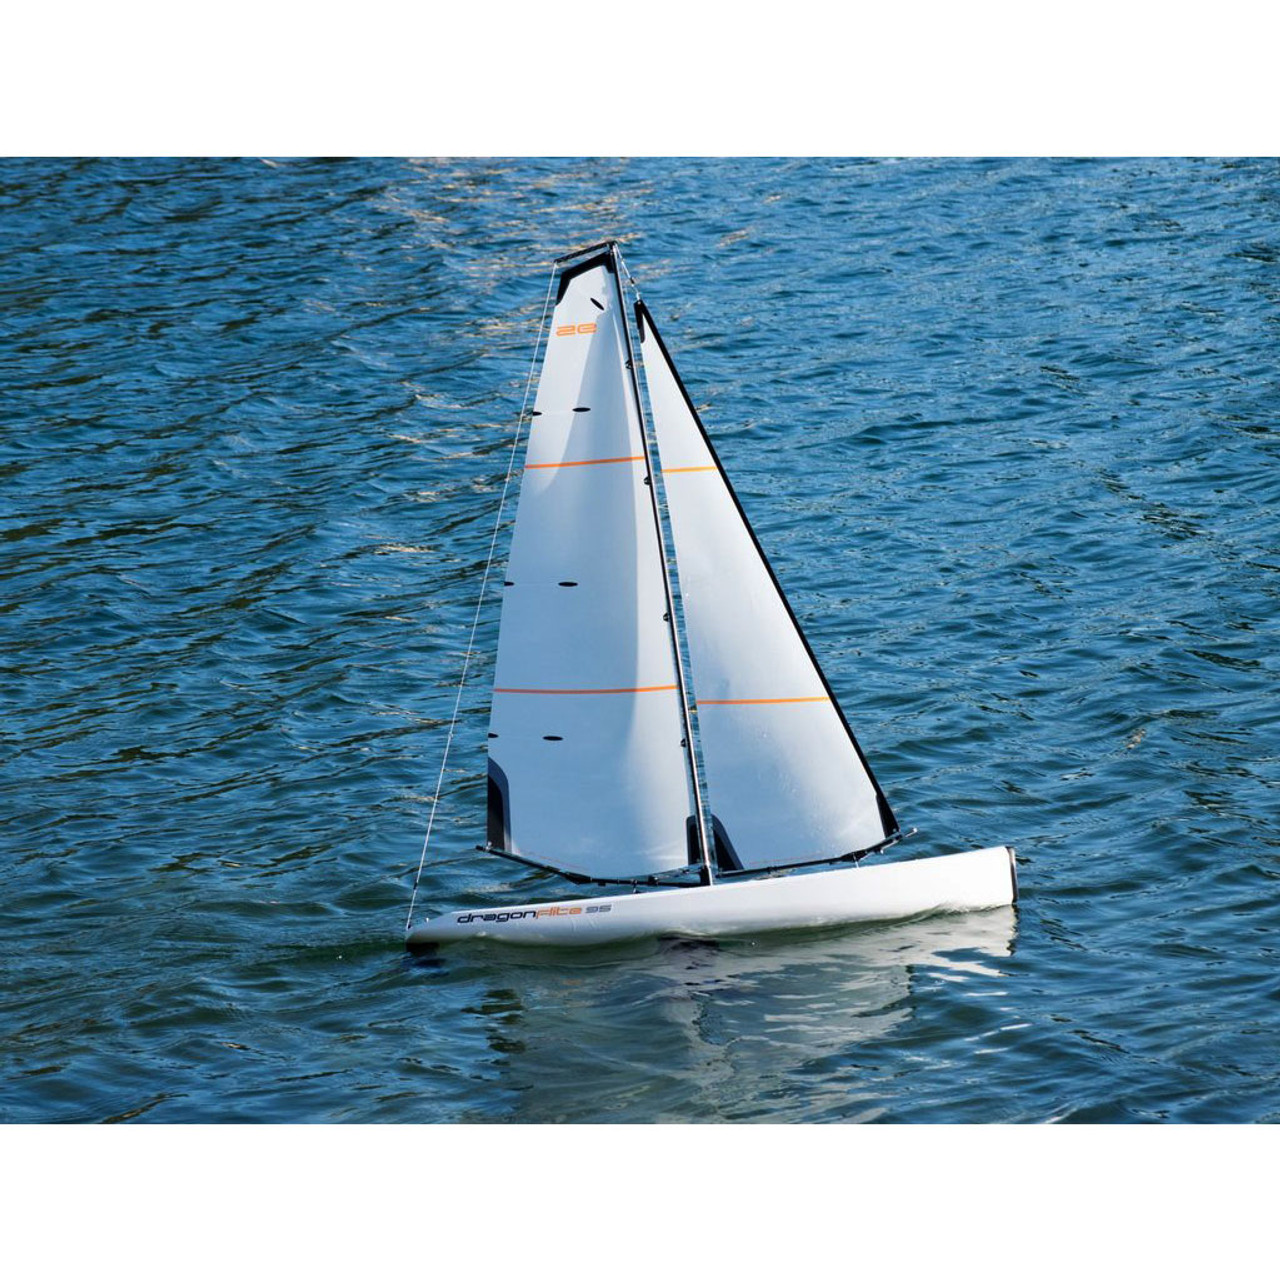 DragonFlite 95 DF95 Class RC Sailboat 950mm